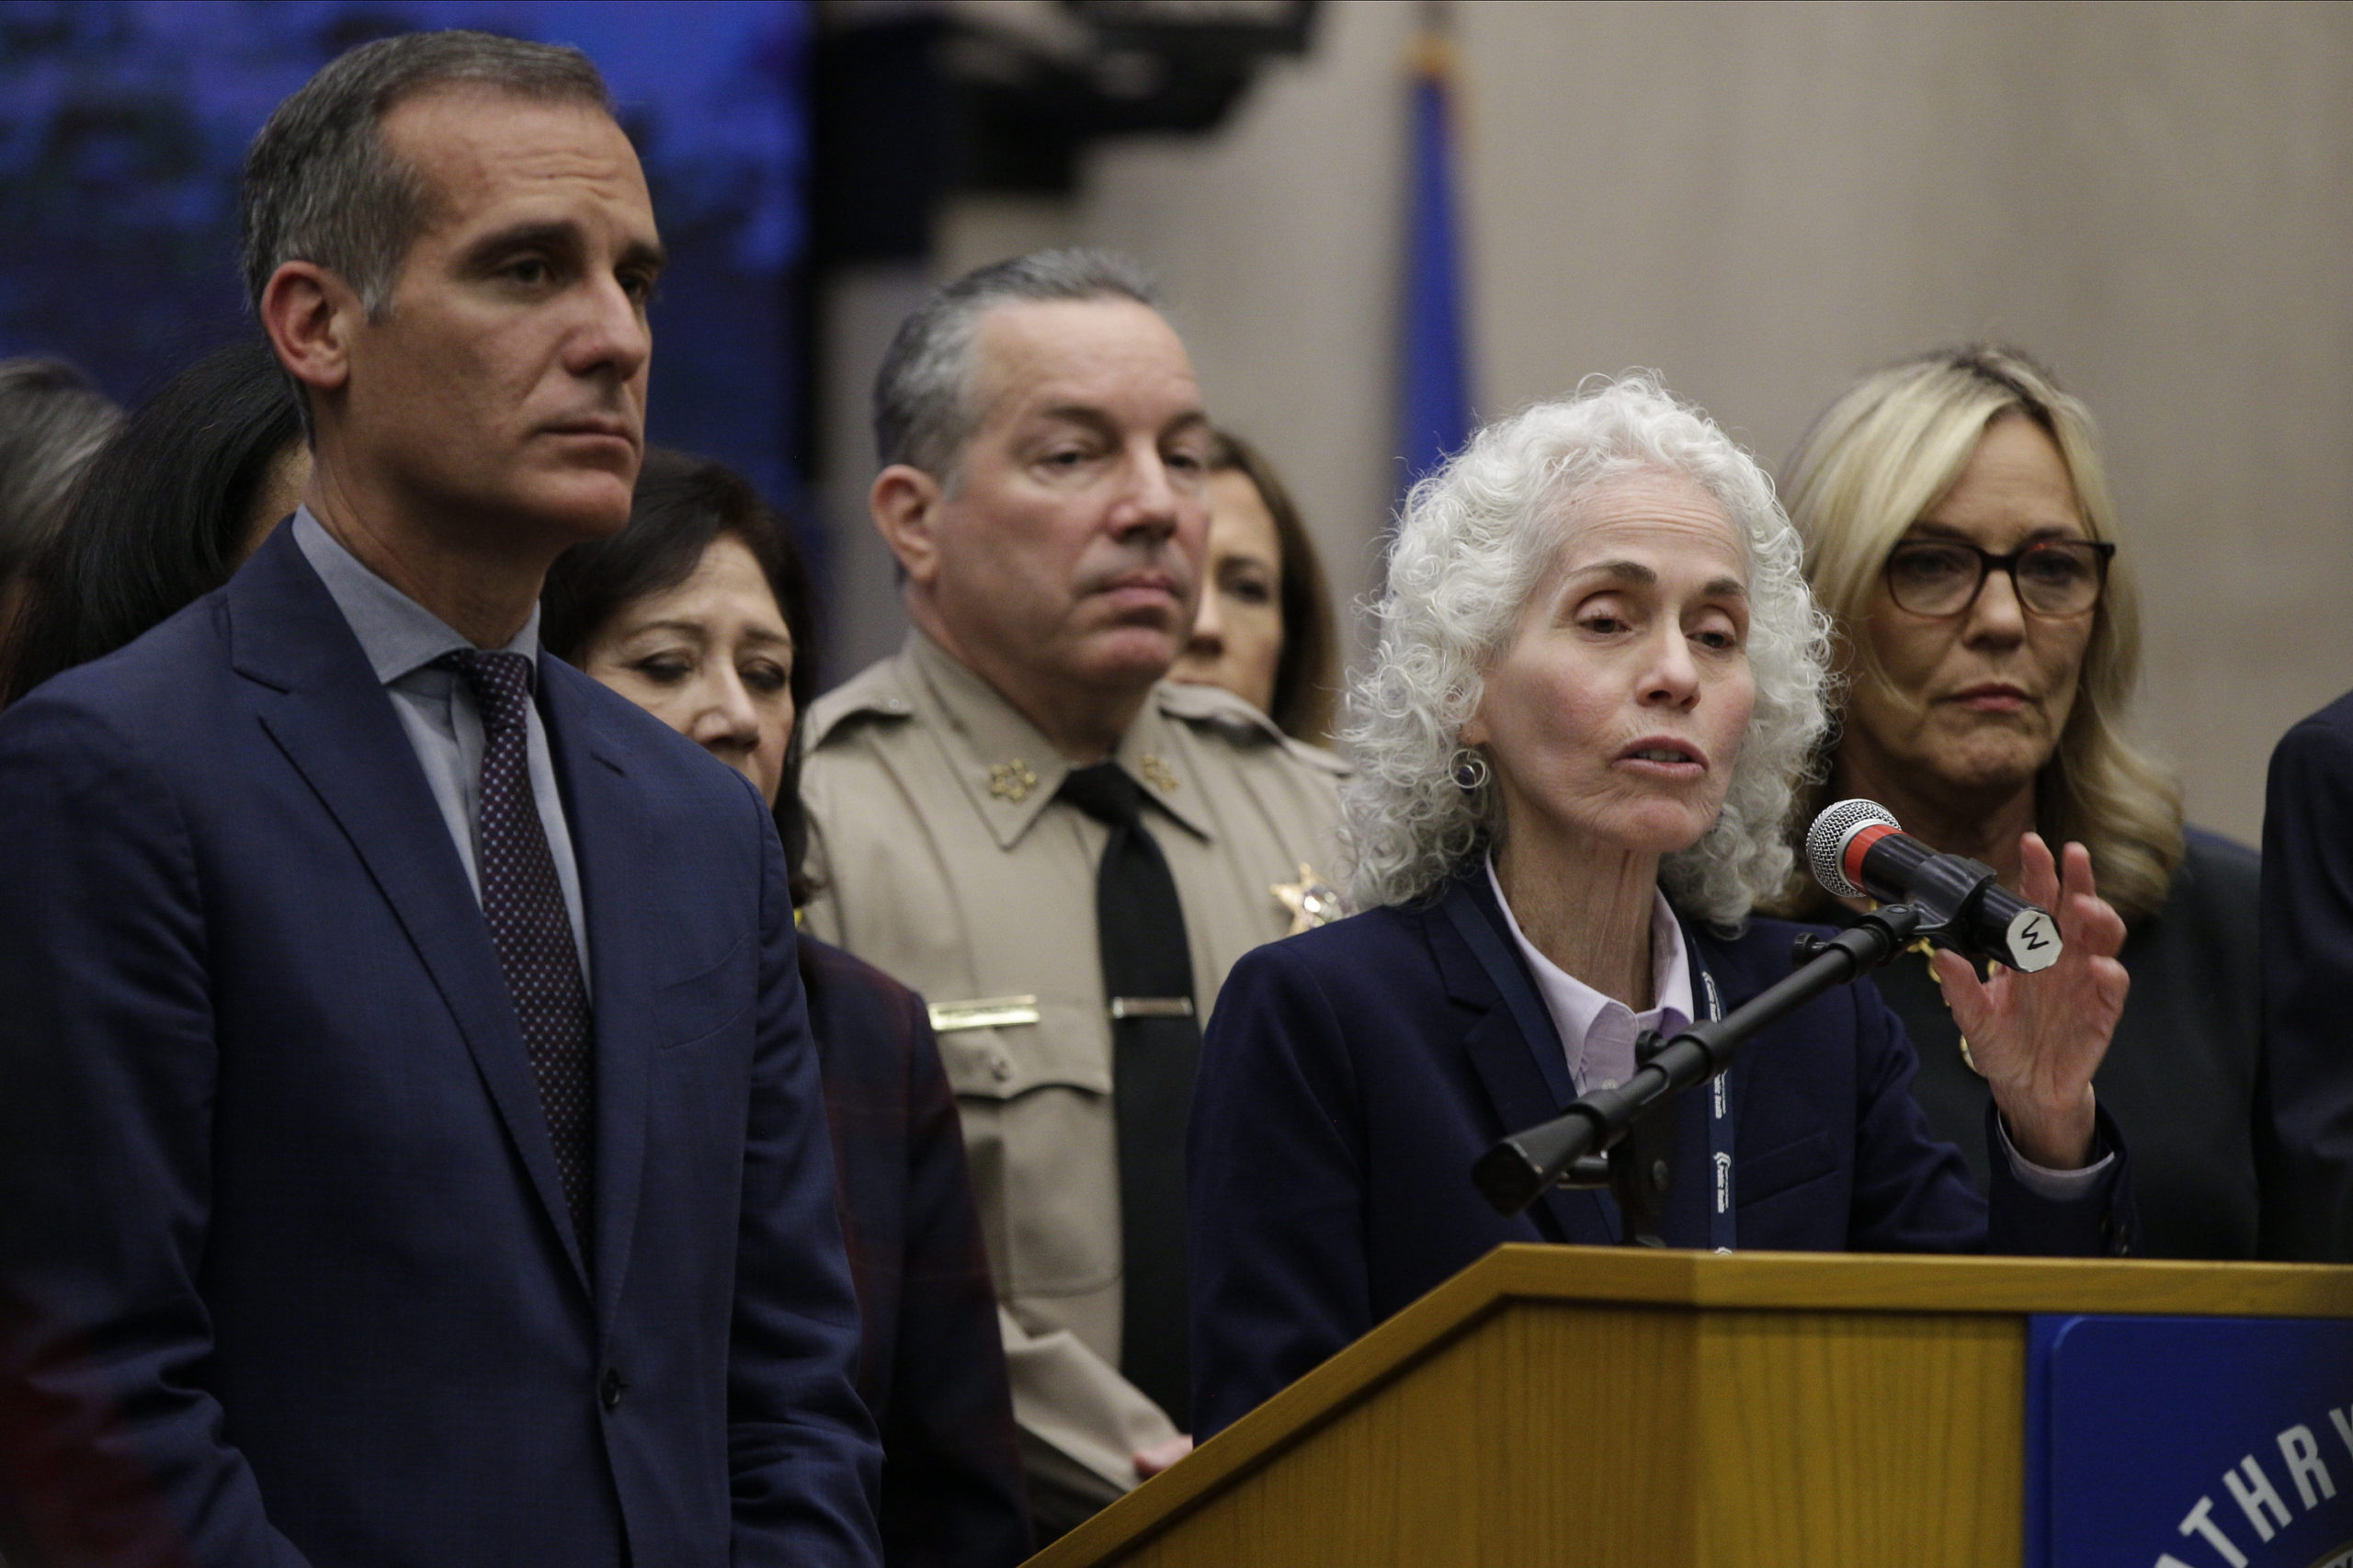 Covid 19: As LA County Sets New Infection Record, State Leaders' Behavior Sends Mixed Messages